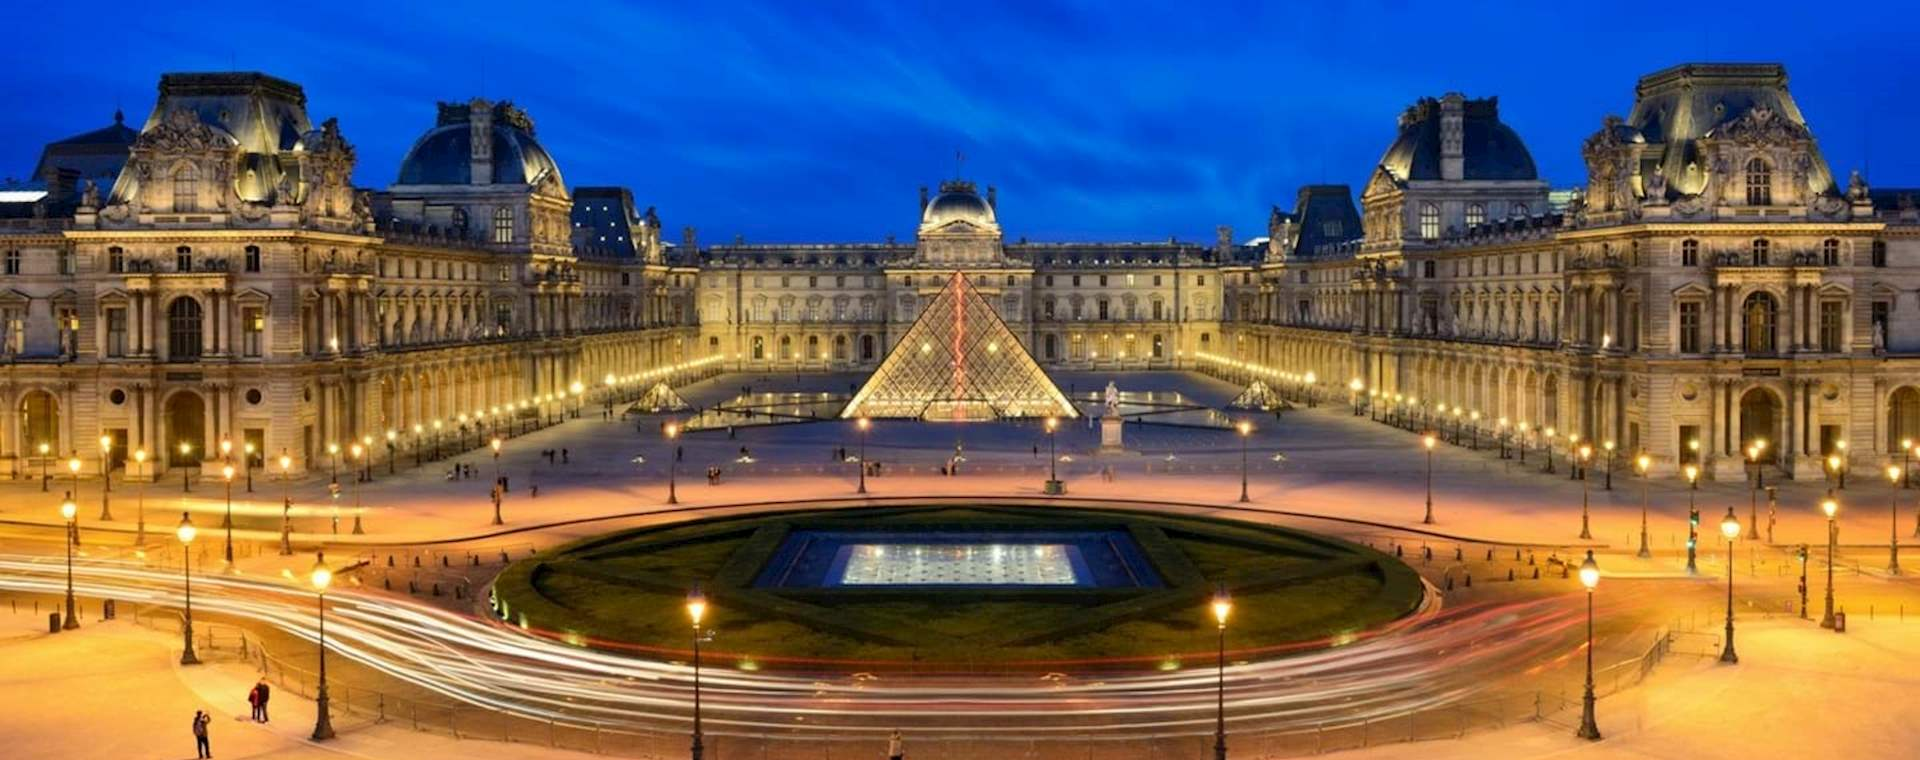 VIP Louvre Highlights and Wine Tasting Evening Tour with Labeling Experience